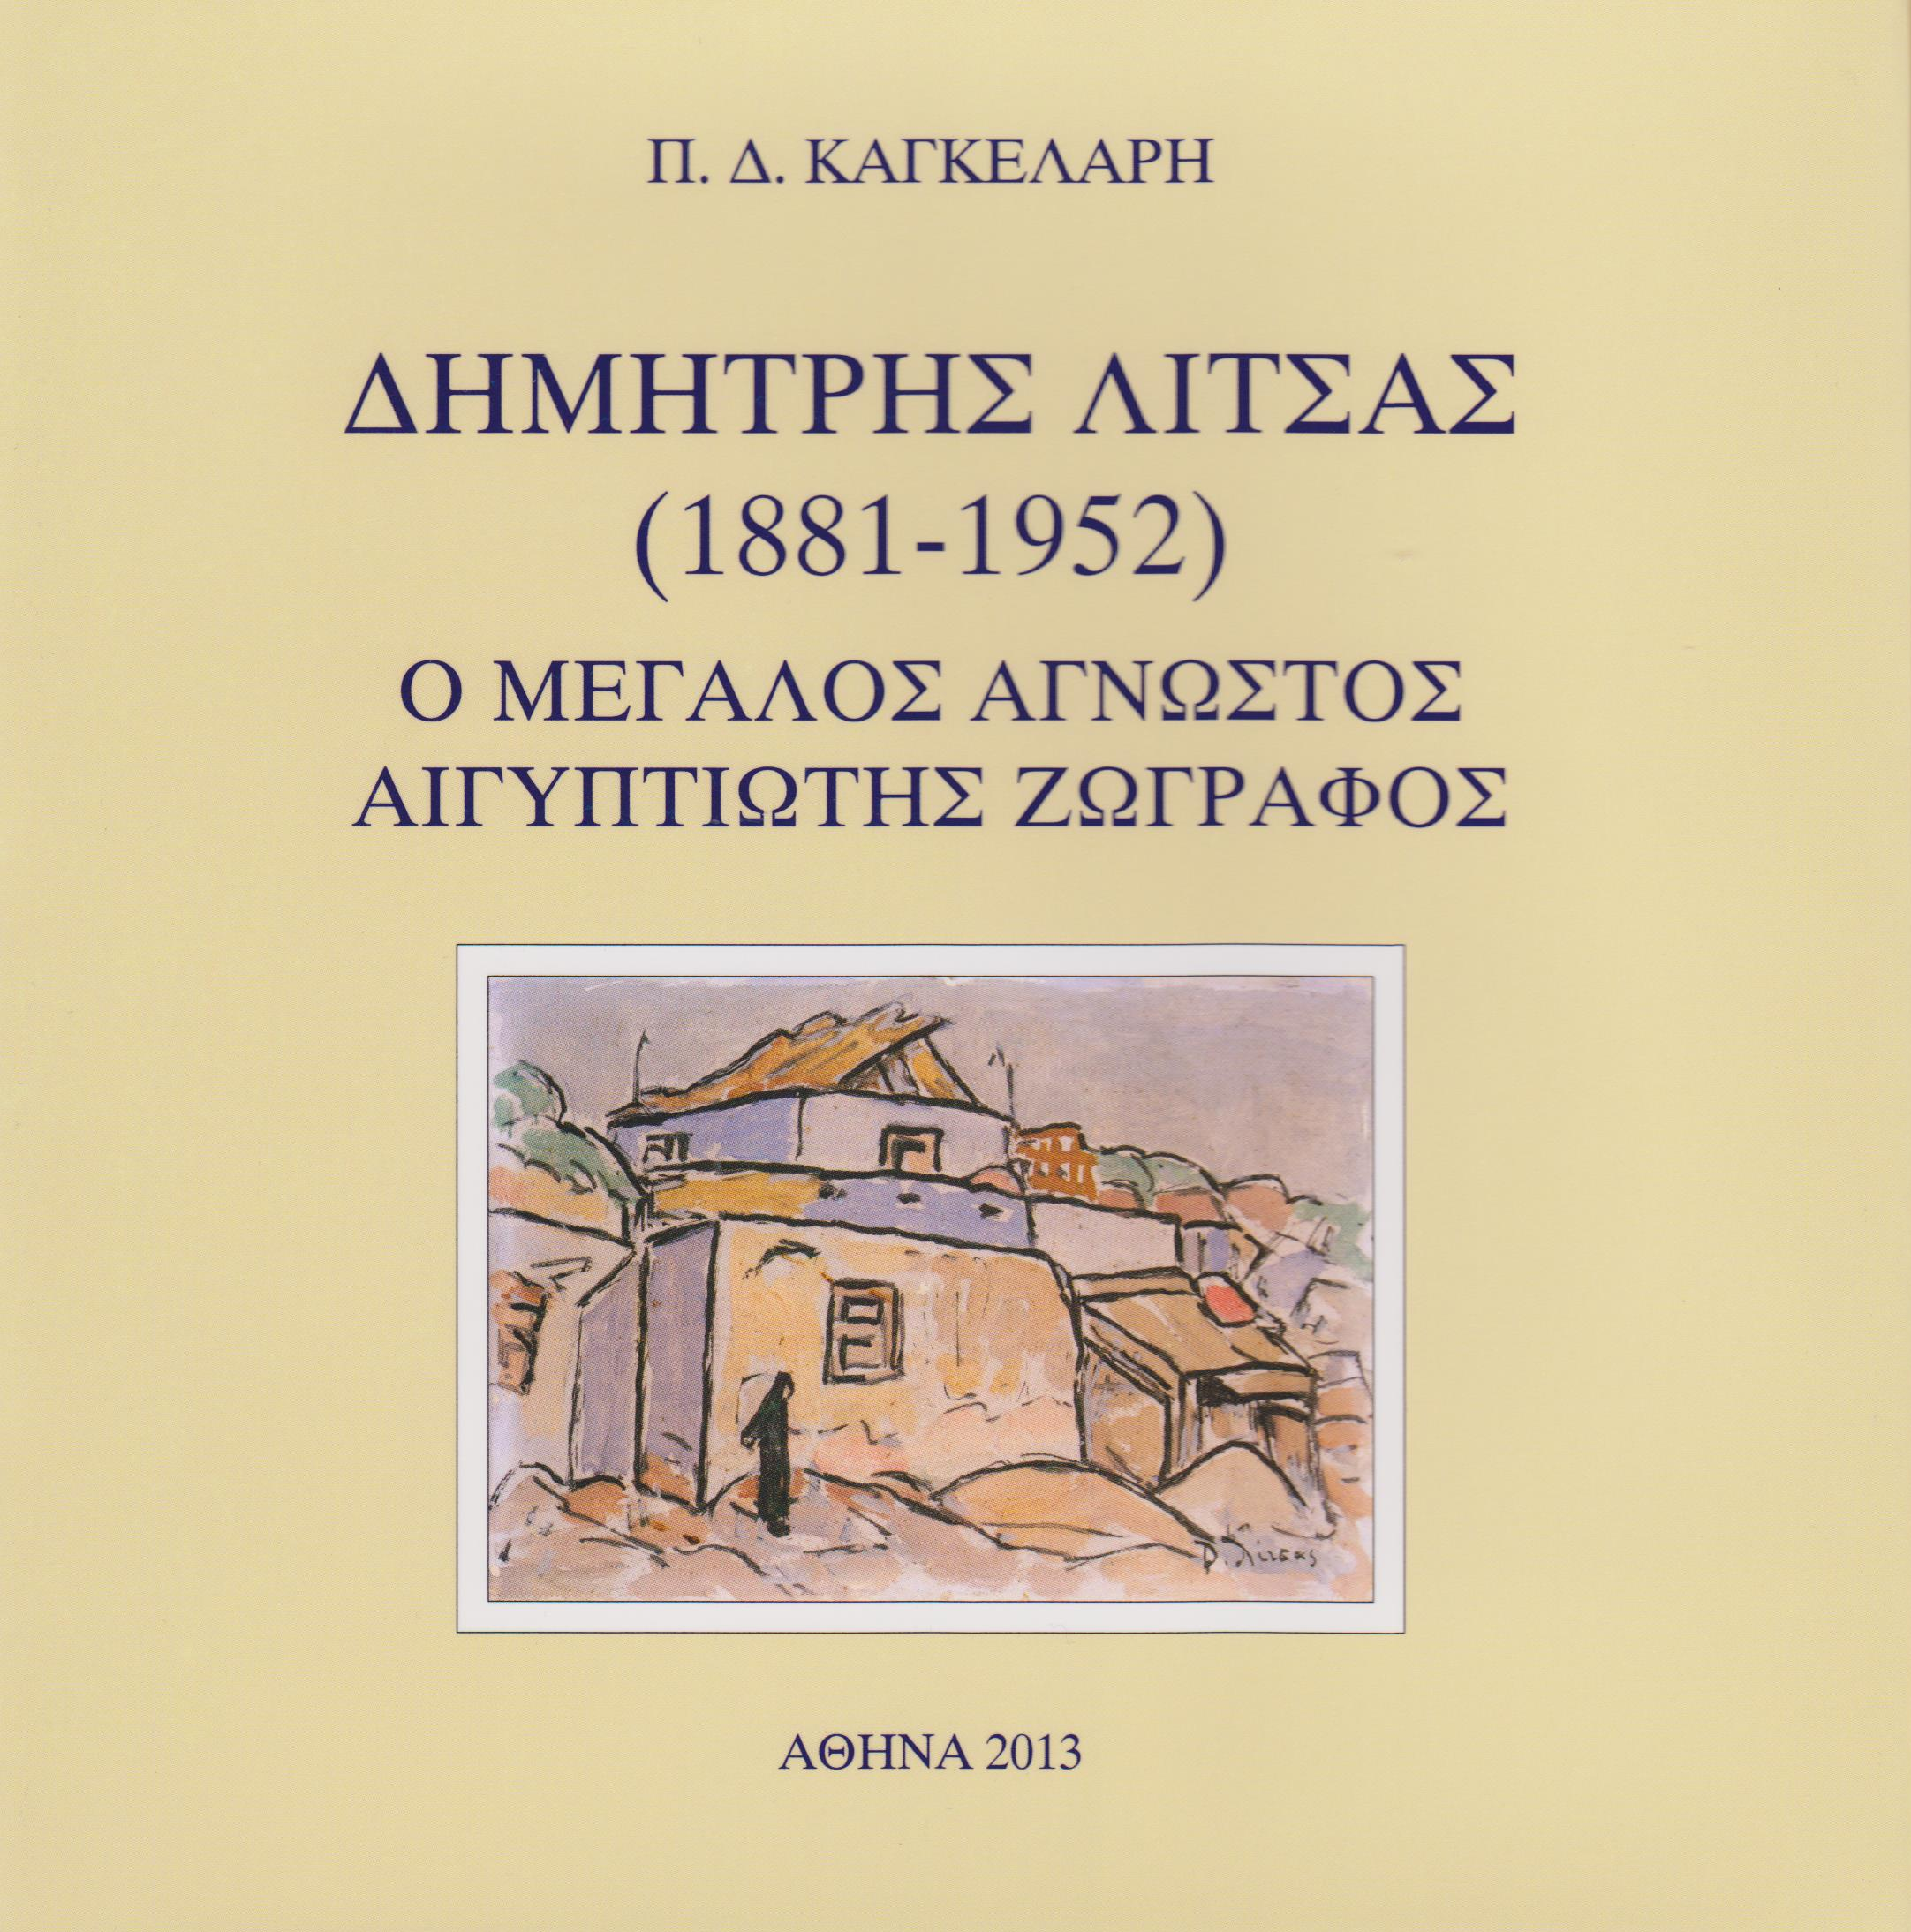 """Dimitris Litsas (1881-1952), A great unknown Greek painter in Egypt"" by P.D.Cangelaris"